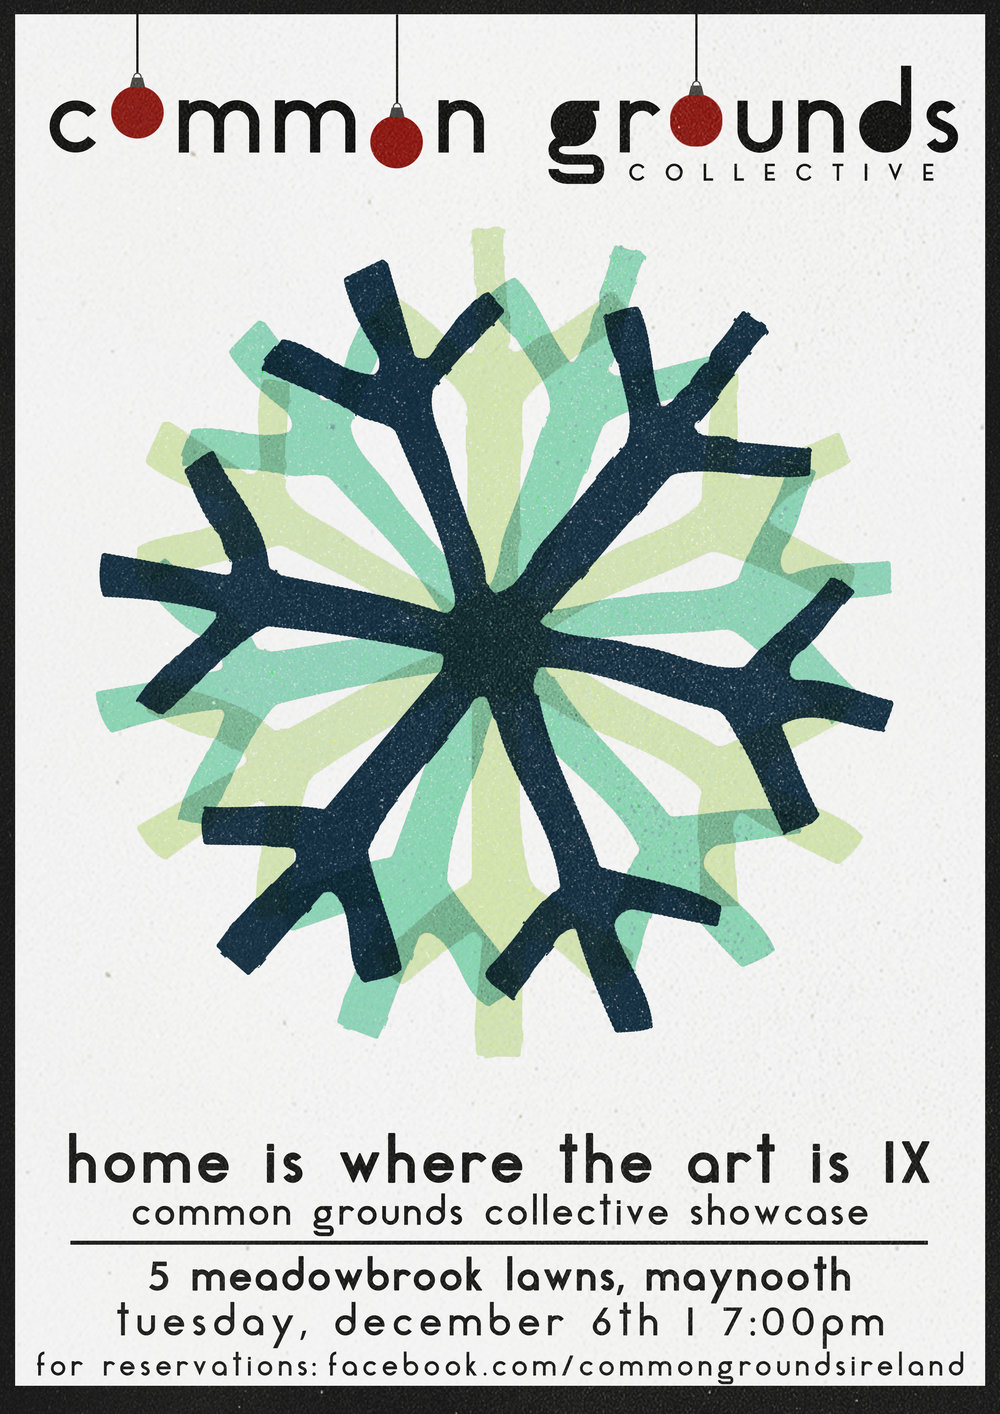 Home is Where the Art is IX Lauren Varian